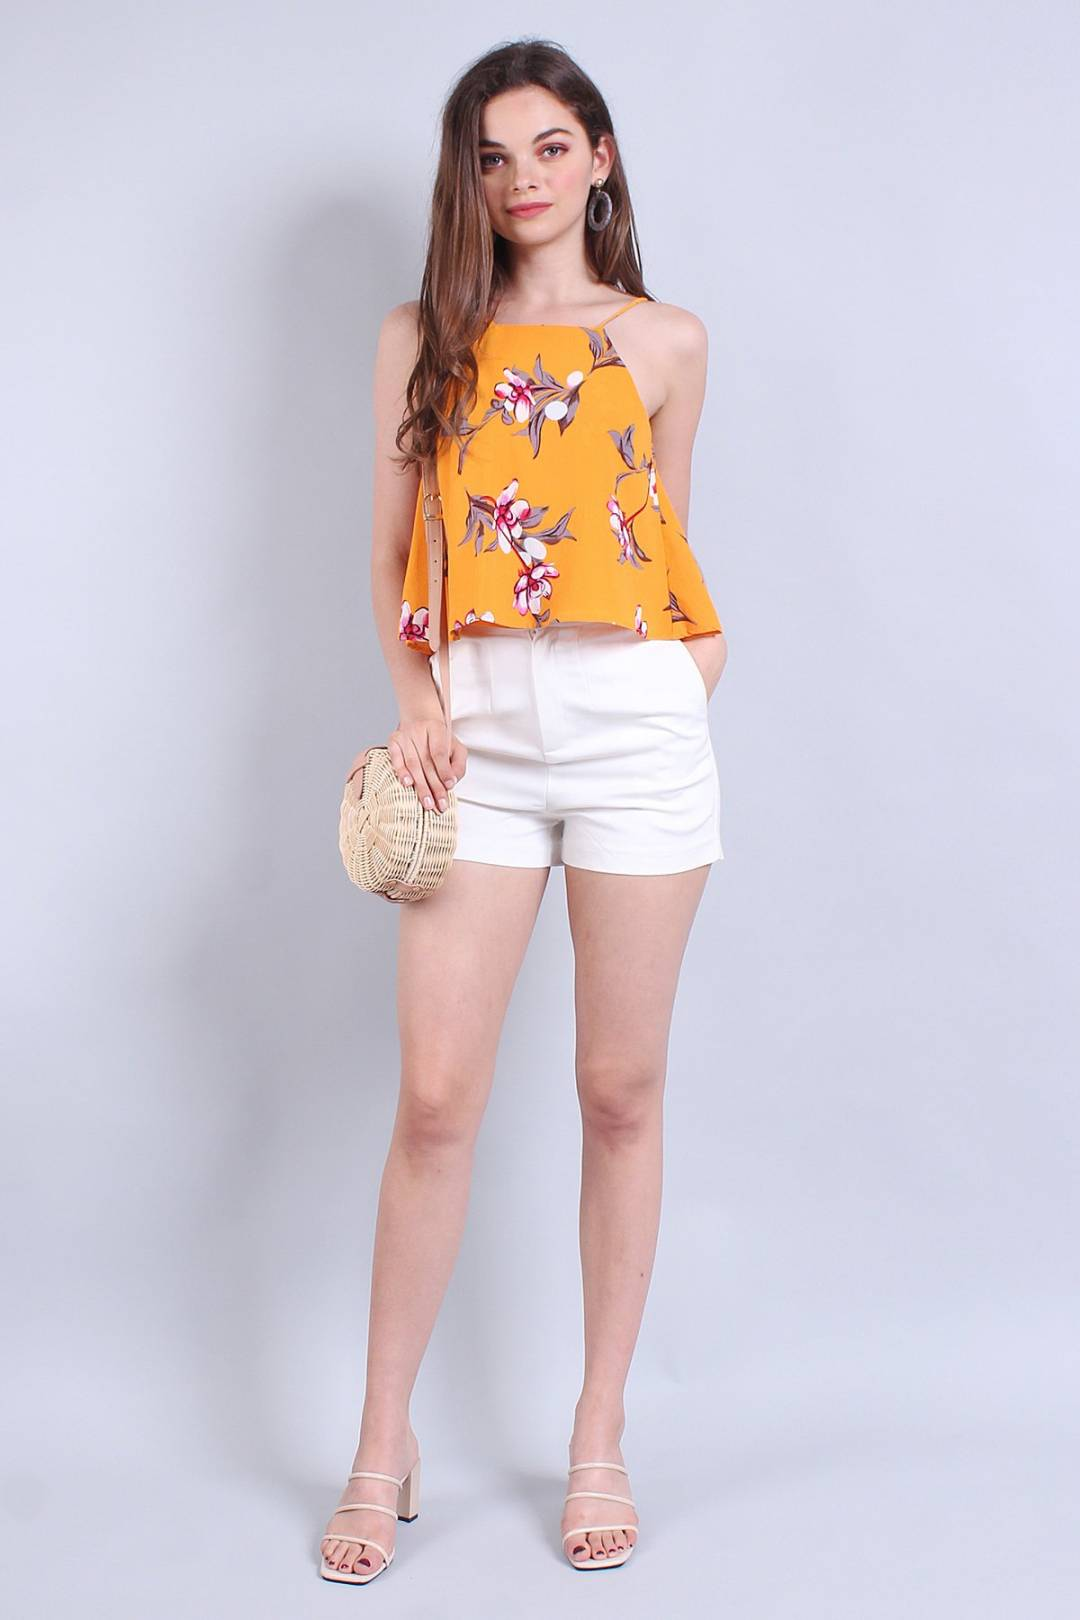 MADEBYNM CAMI KEEPER BUTTONS TOP IN MAGNOLIA FLORAL [XS/S/M]